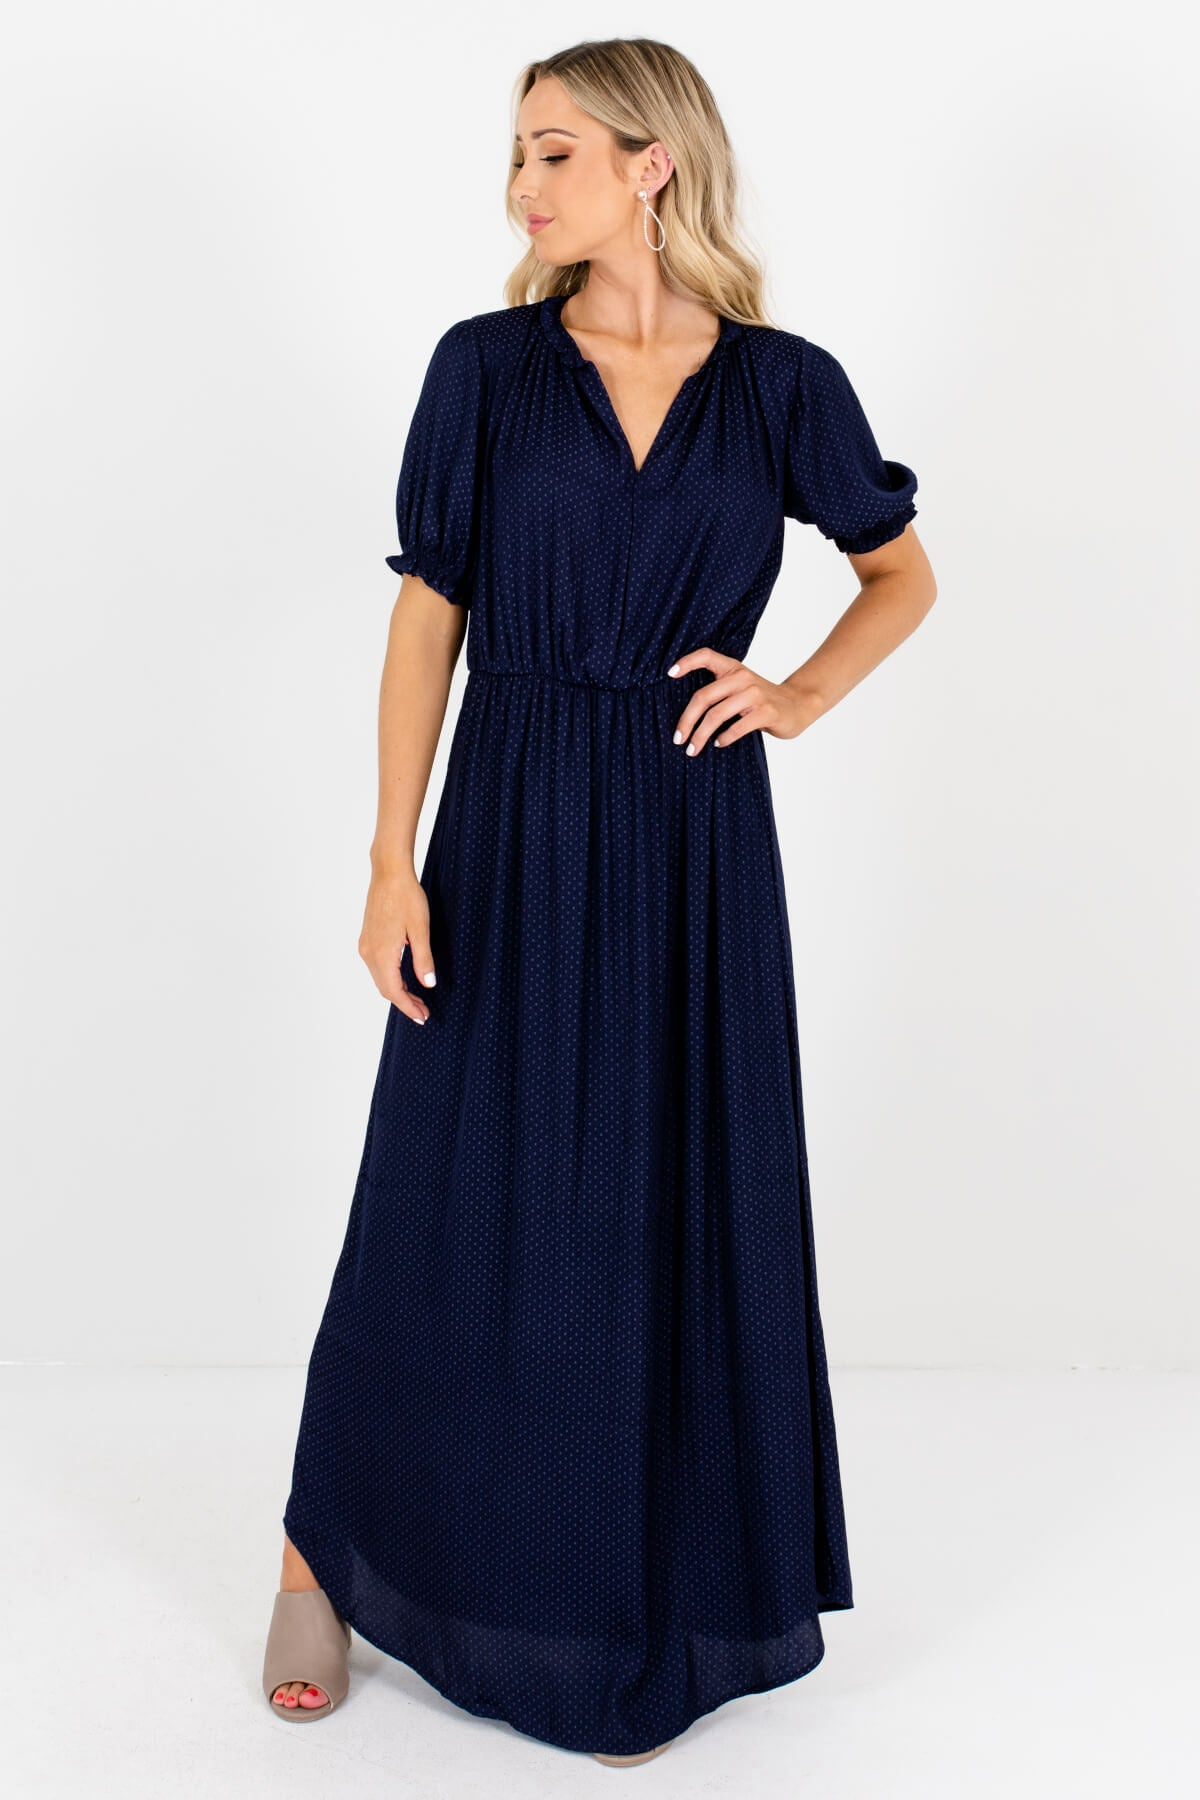 Blue Square Patterned Boutique Maxi Dresses for Women